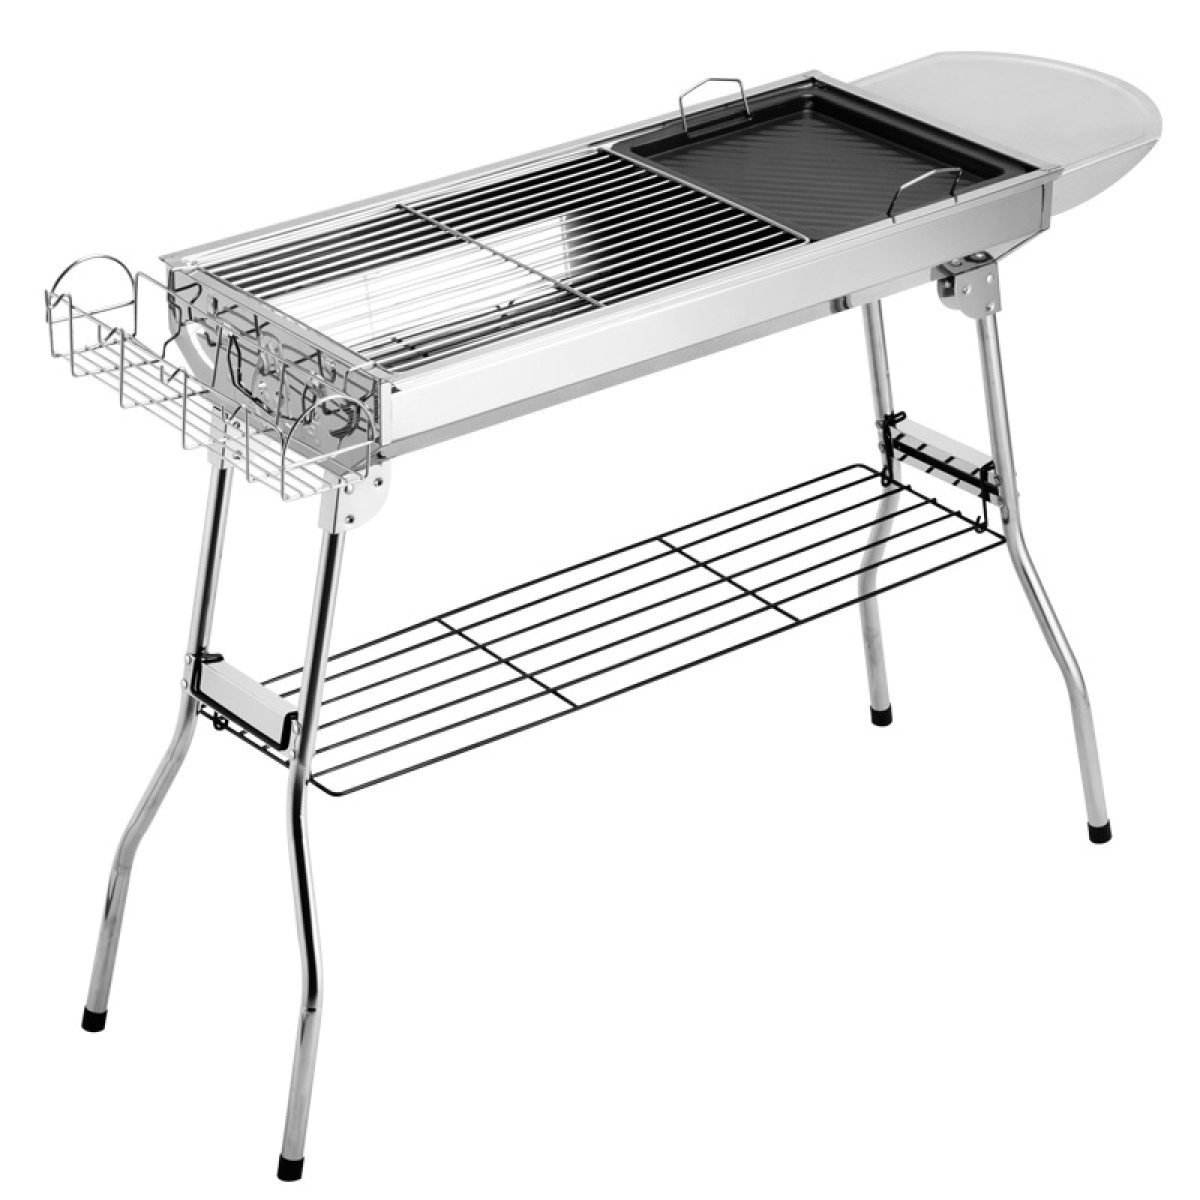 Holzkohle Grill Edelstahl Grill Grill Haus Grill Portable Barbecue Grill Portable Home Grill